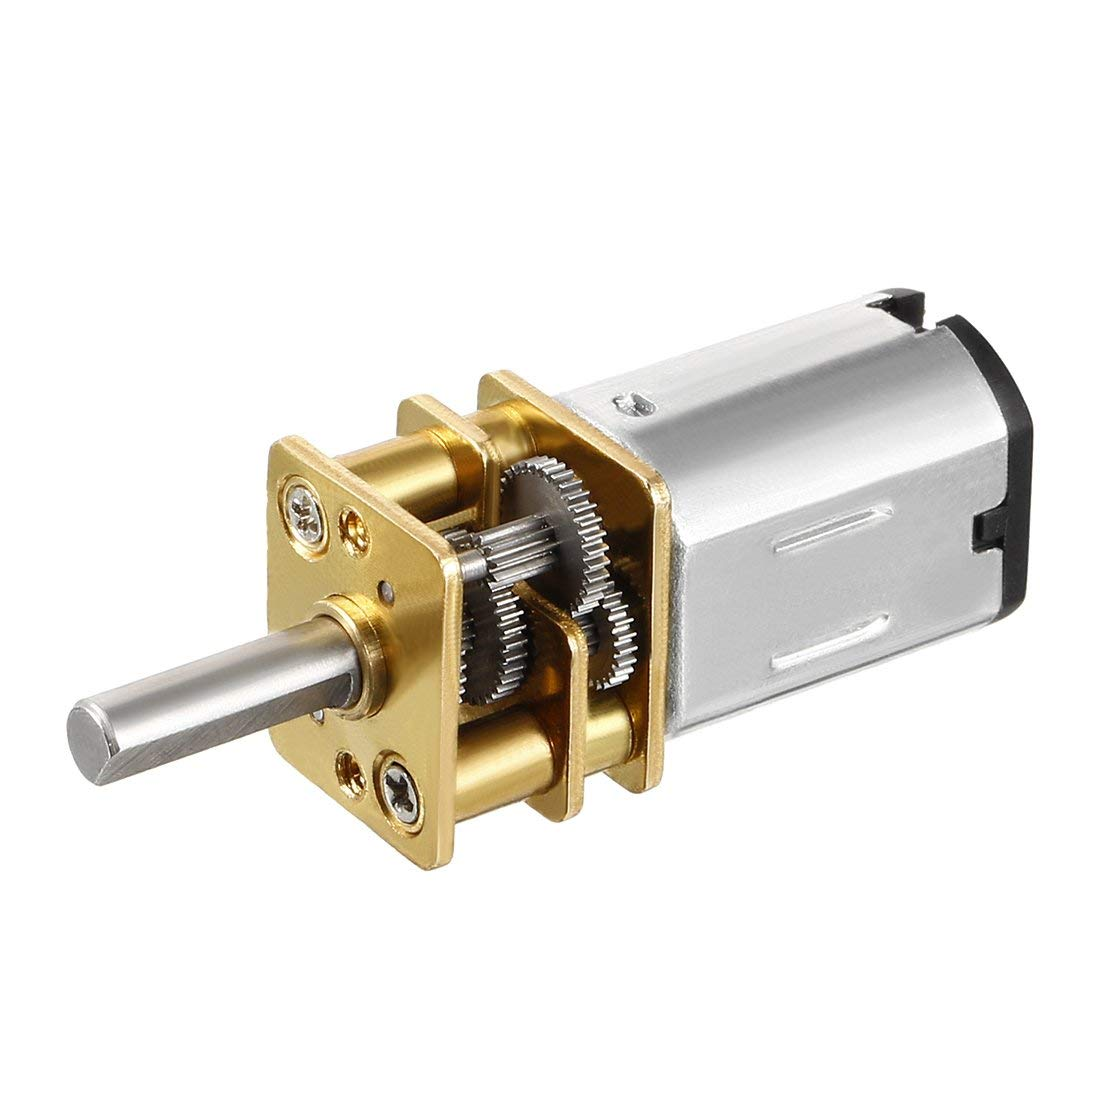 Greartisan DC 12V 1000RPM N20 High Torque Speed Reduction Mo